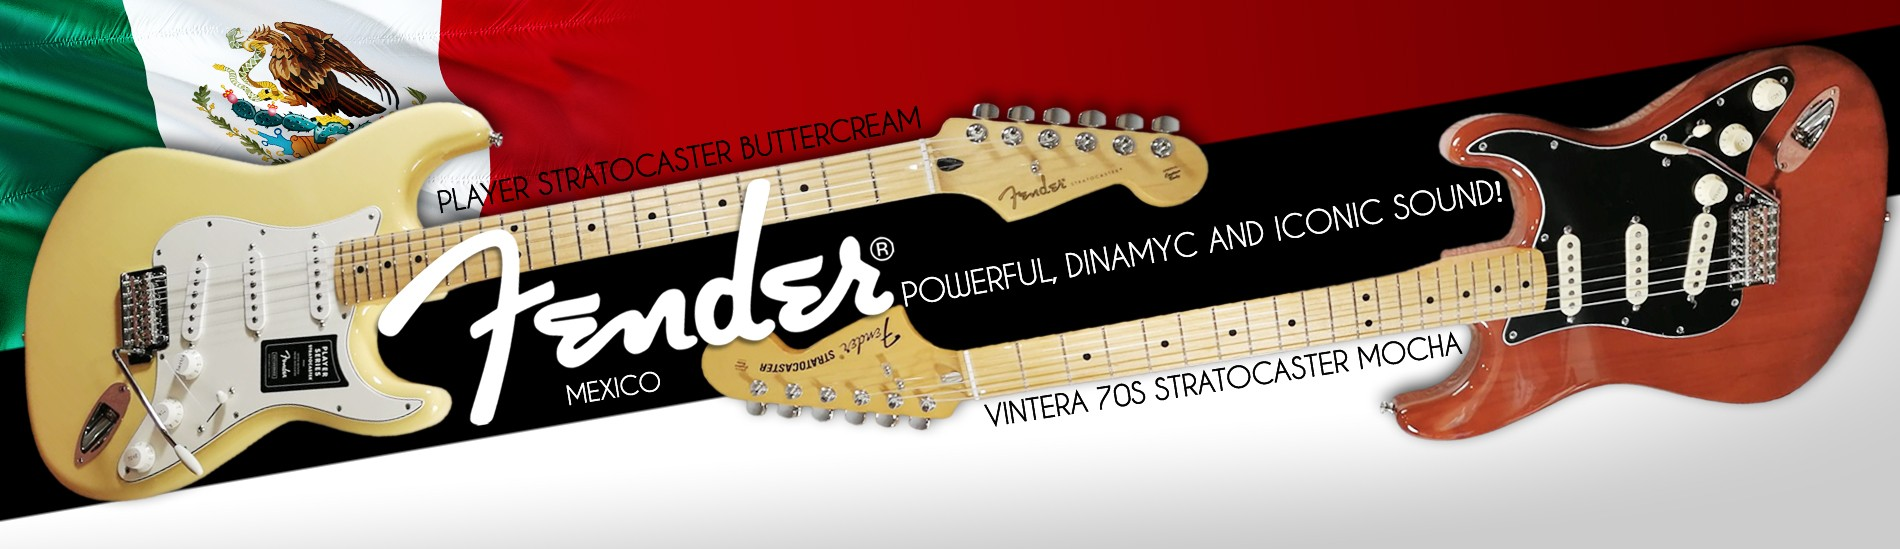 Fender Mexico -  Powerful, dinamyc and iconic sound!